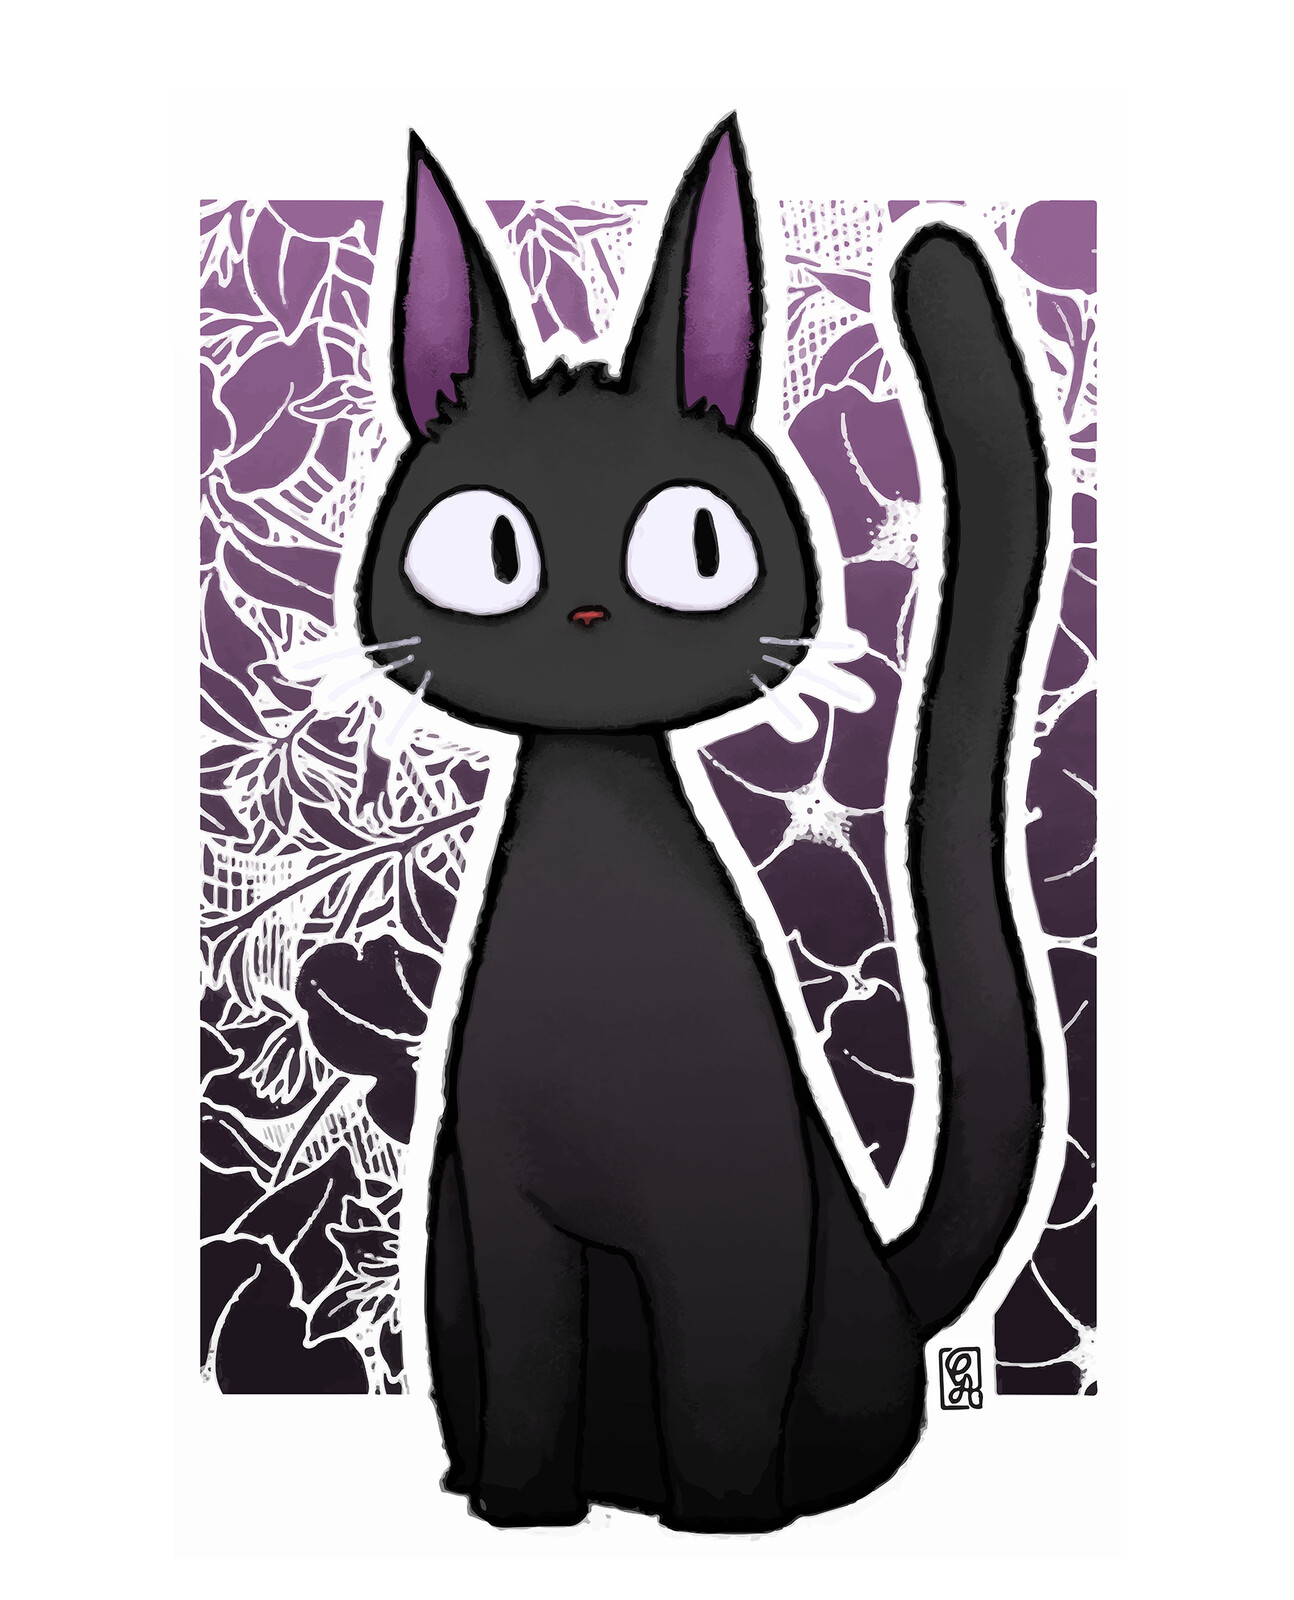 Jiji Illustration